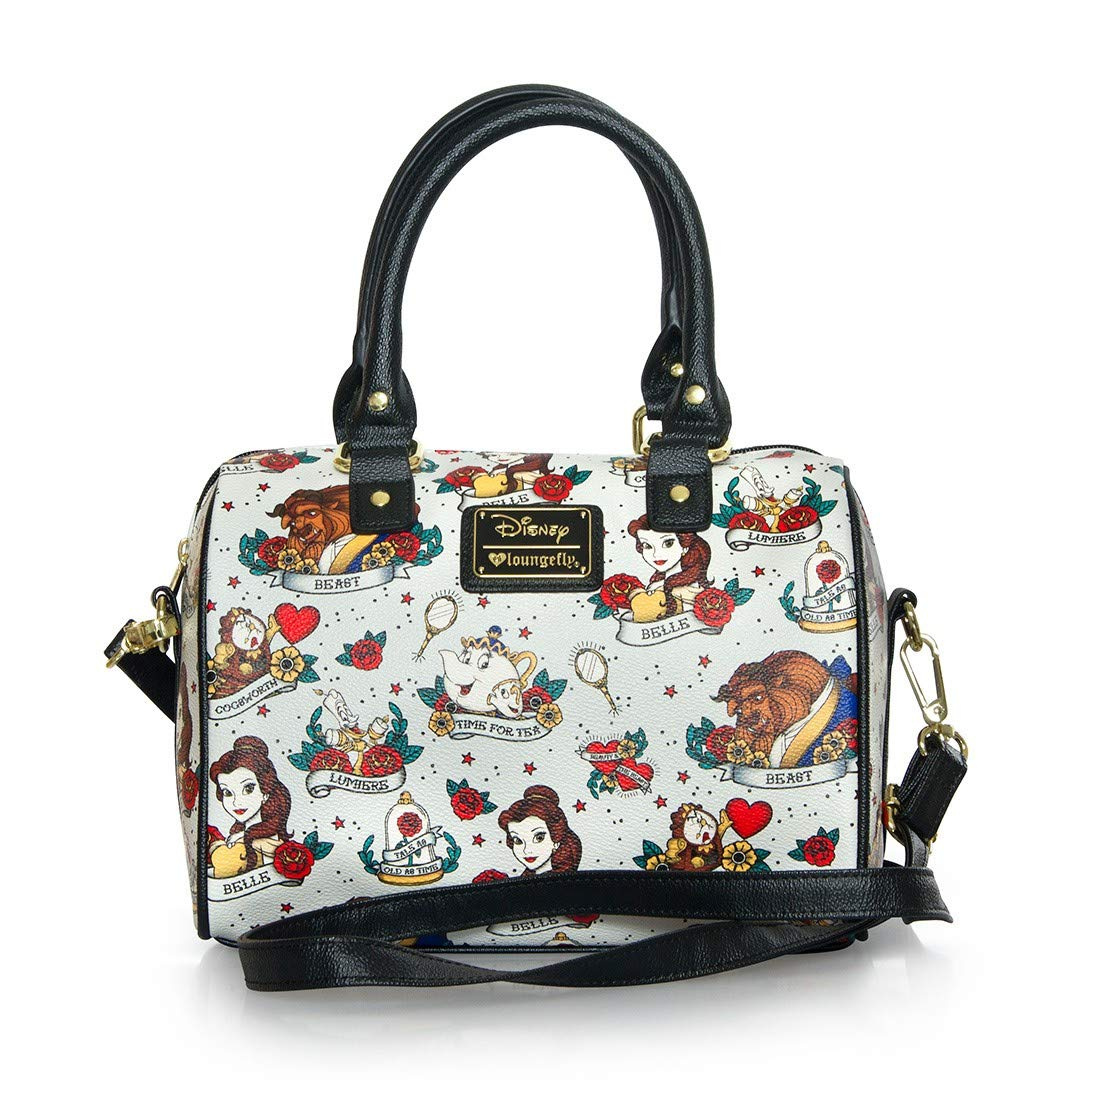 bd1a60dbd Loungefly Handbag Bags: Buy Online from Fishpond.co.nz